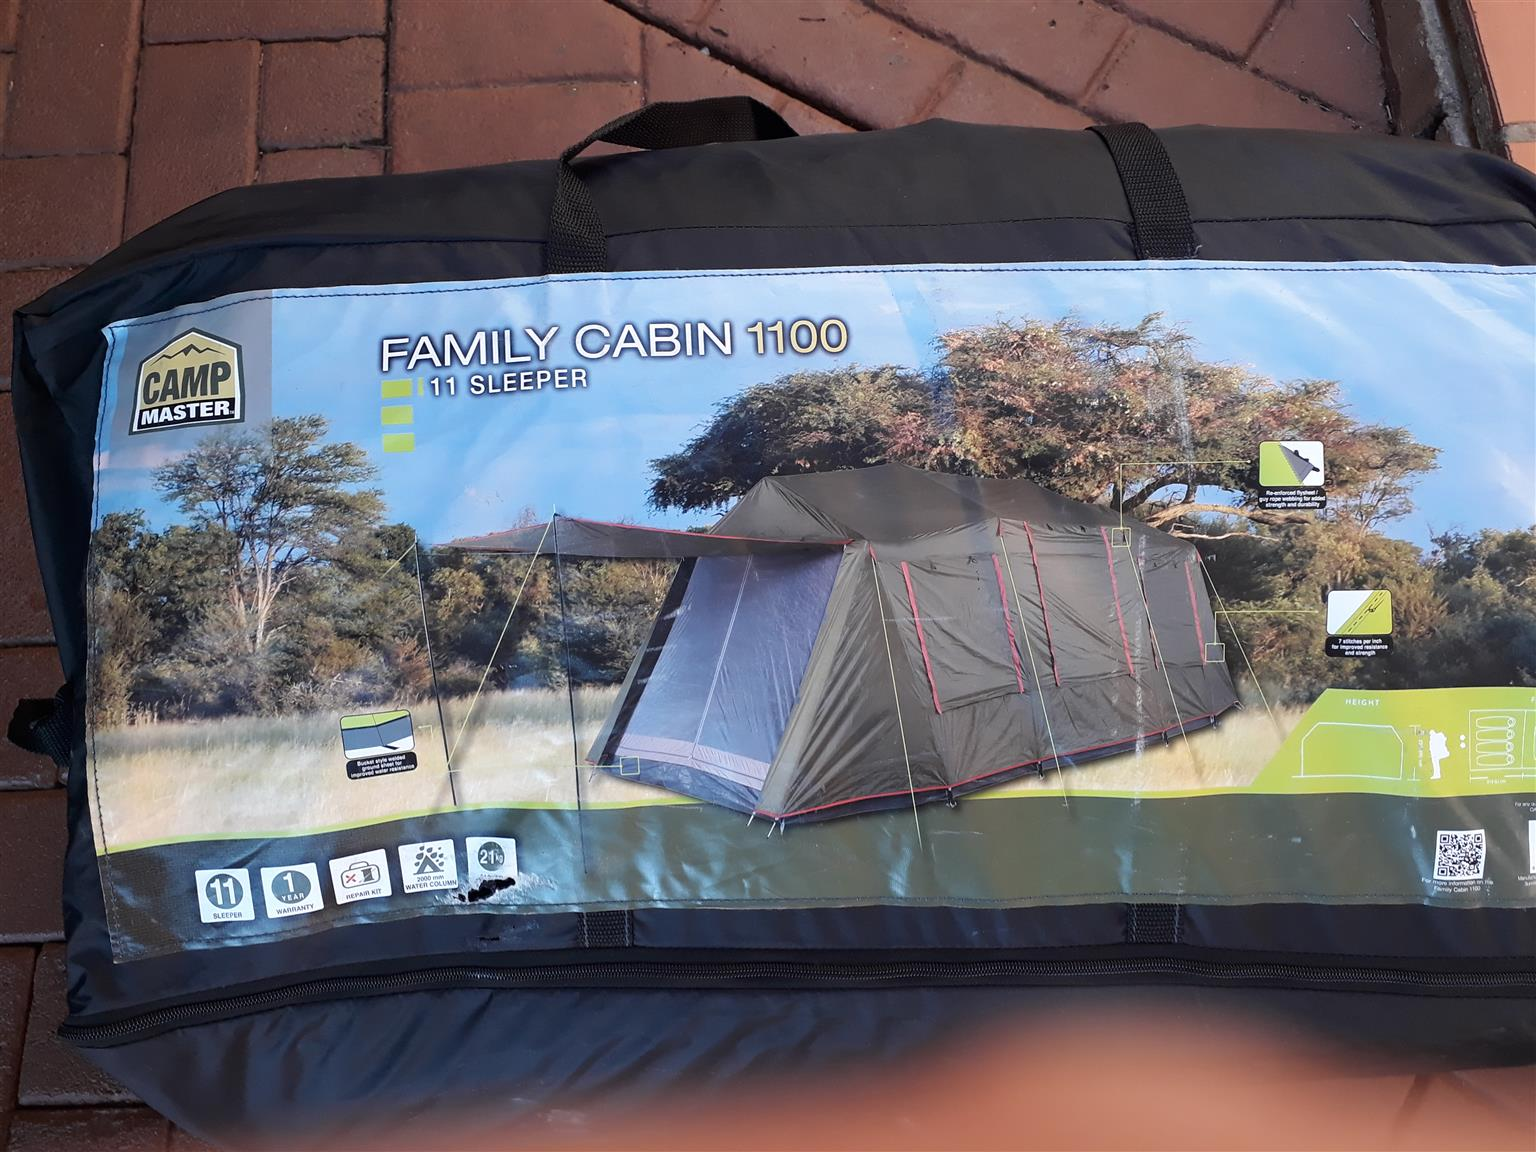 Campmaster Family Cabin 1100 Tent